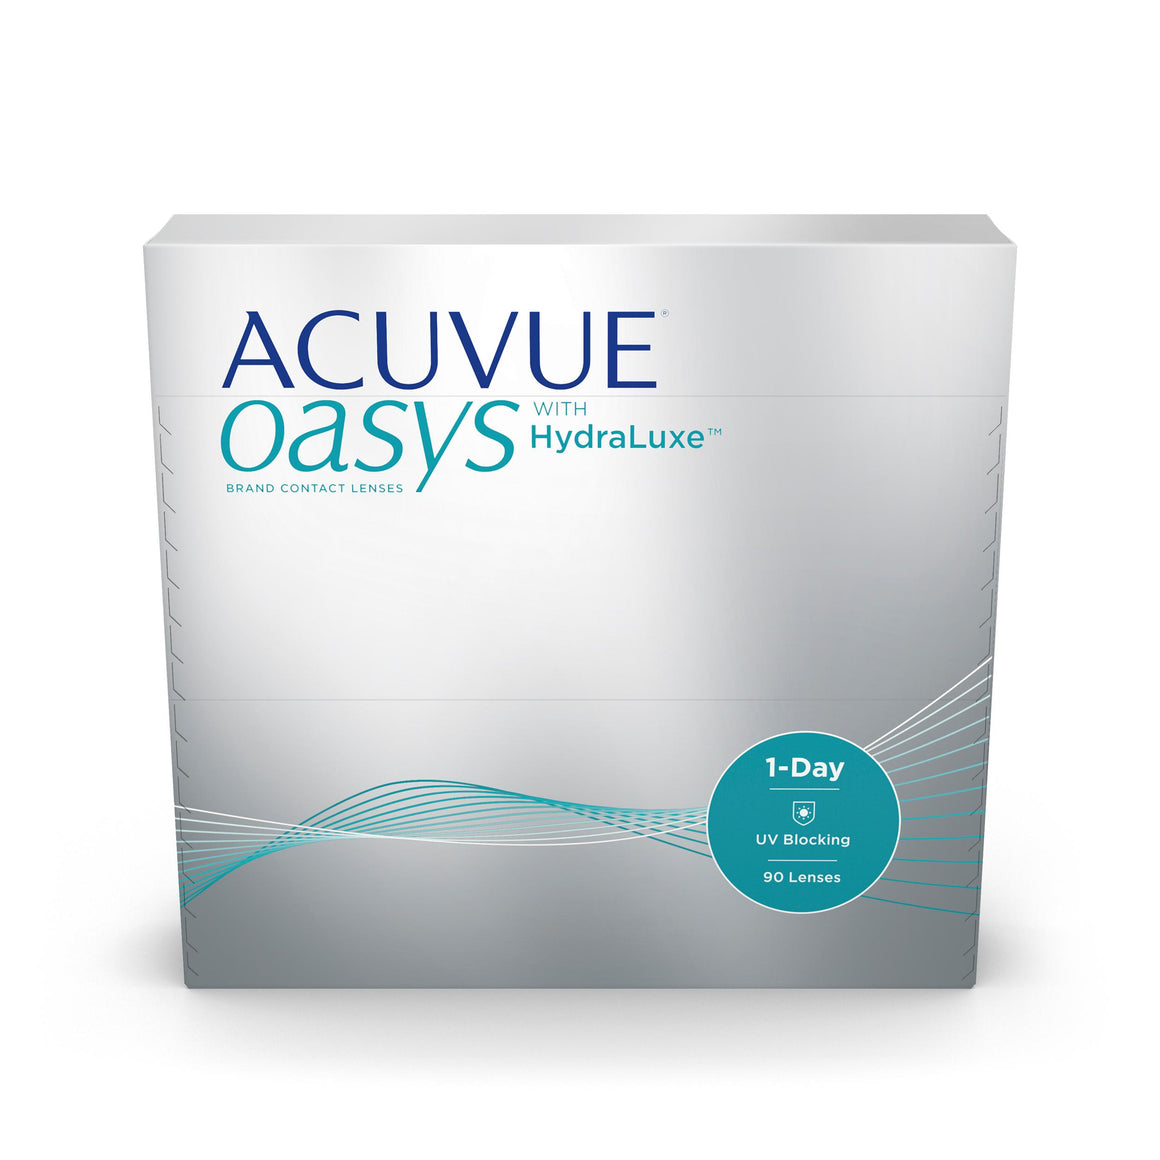 Acuvue Osys with HydraLuxe 1-Day 90 Pack